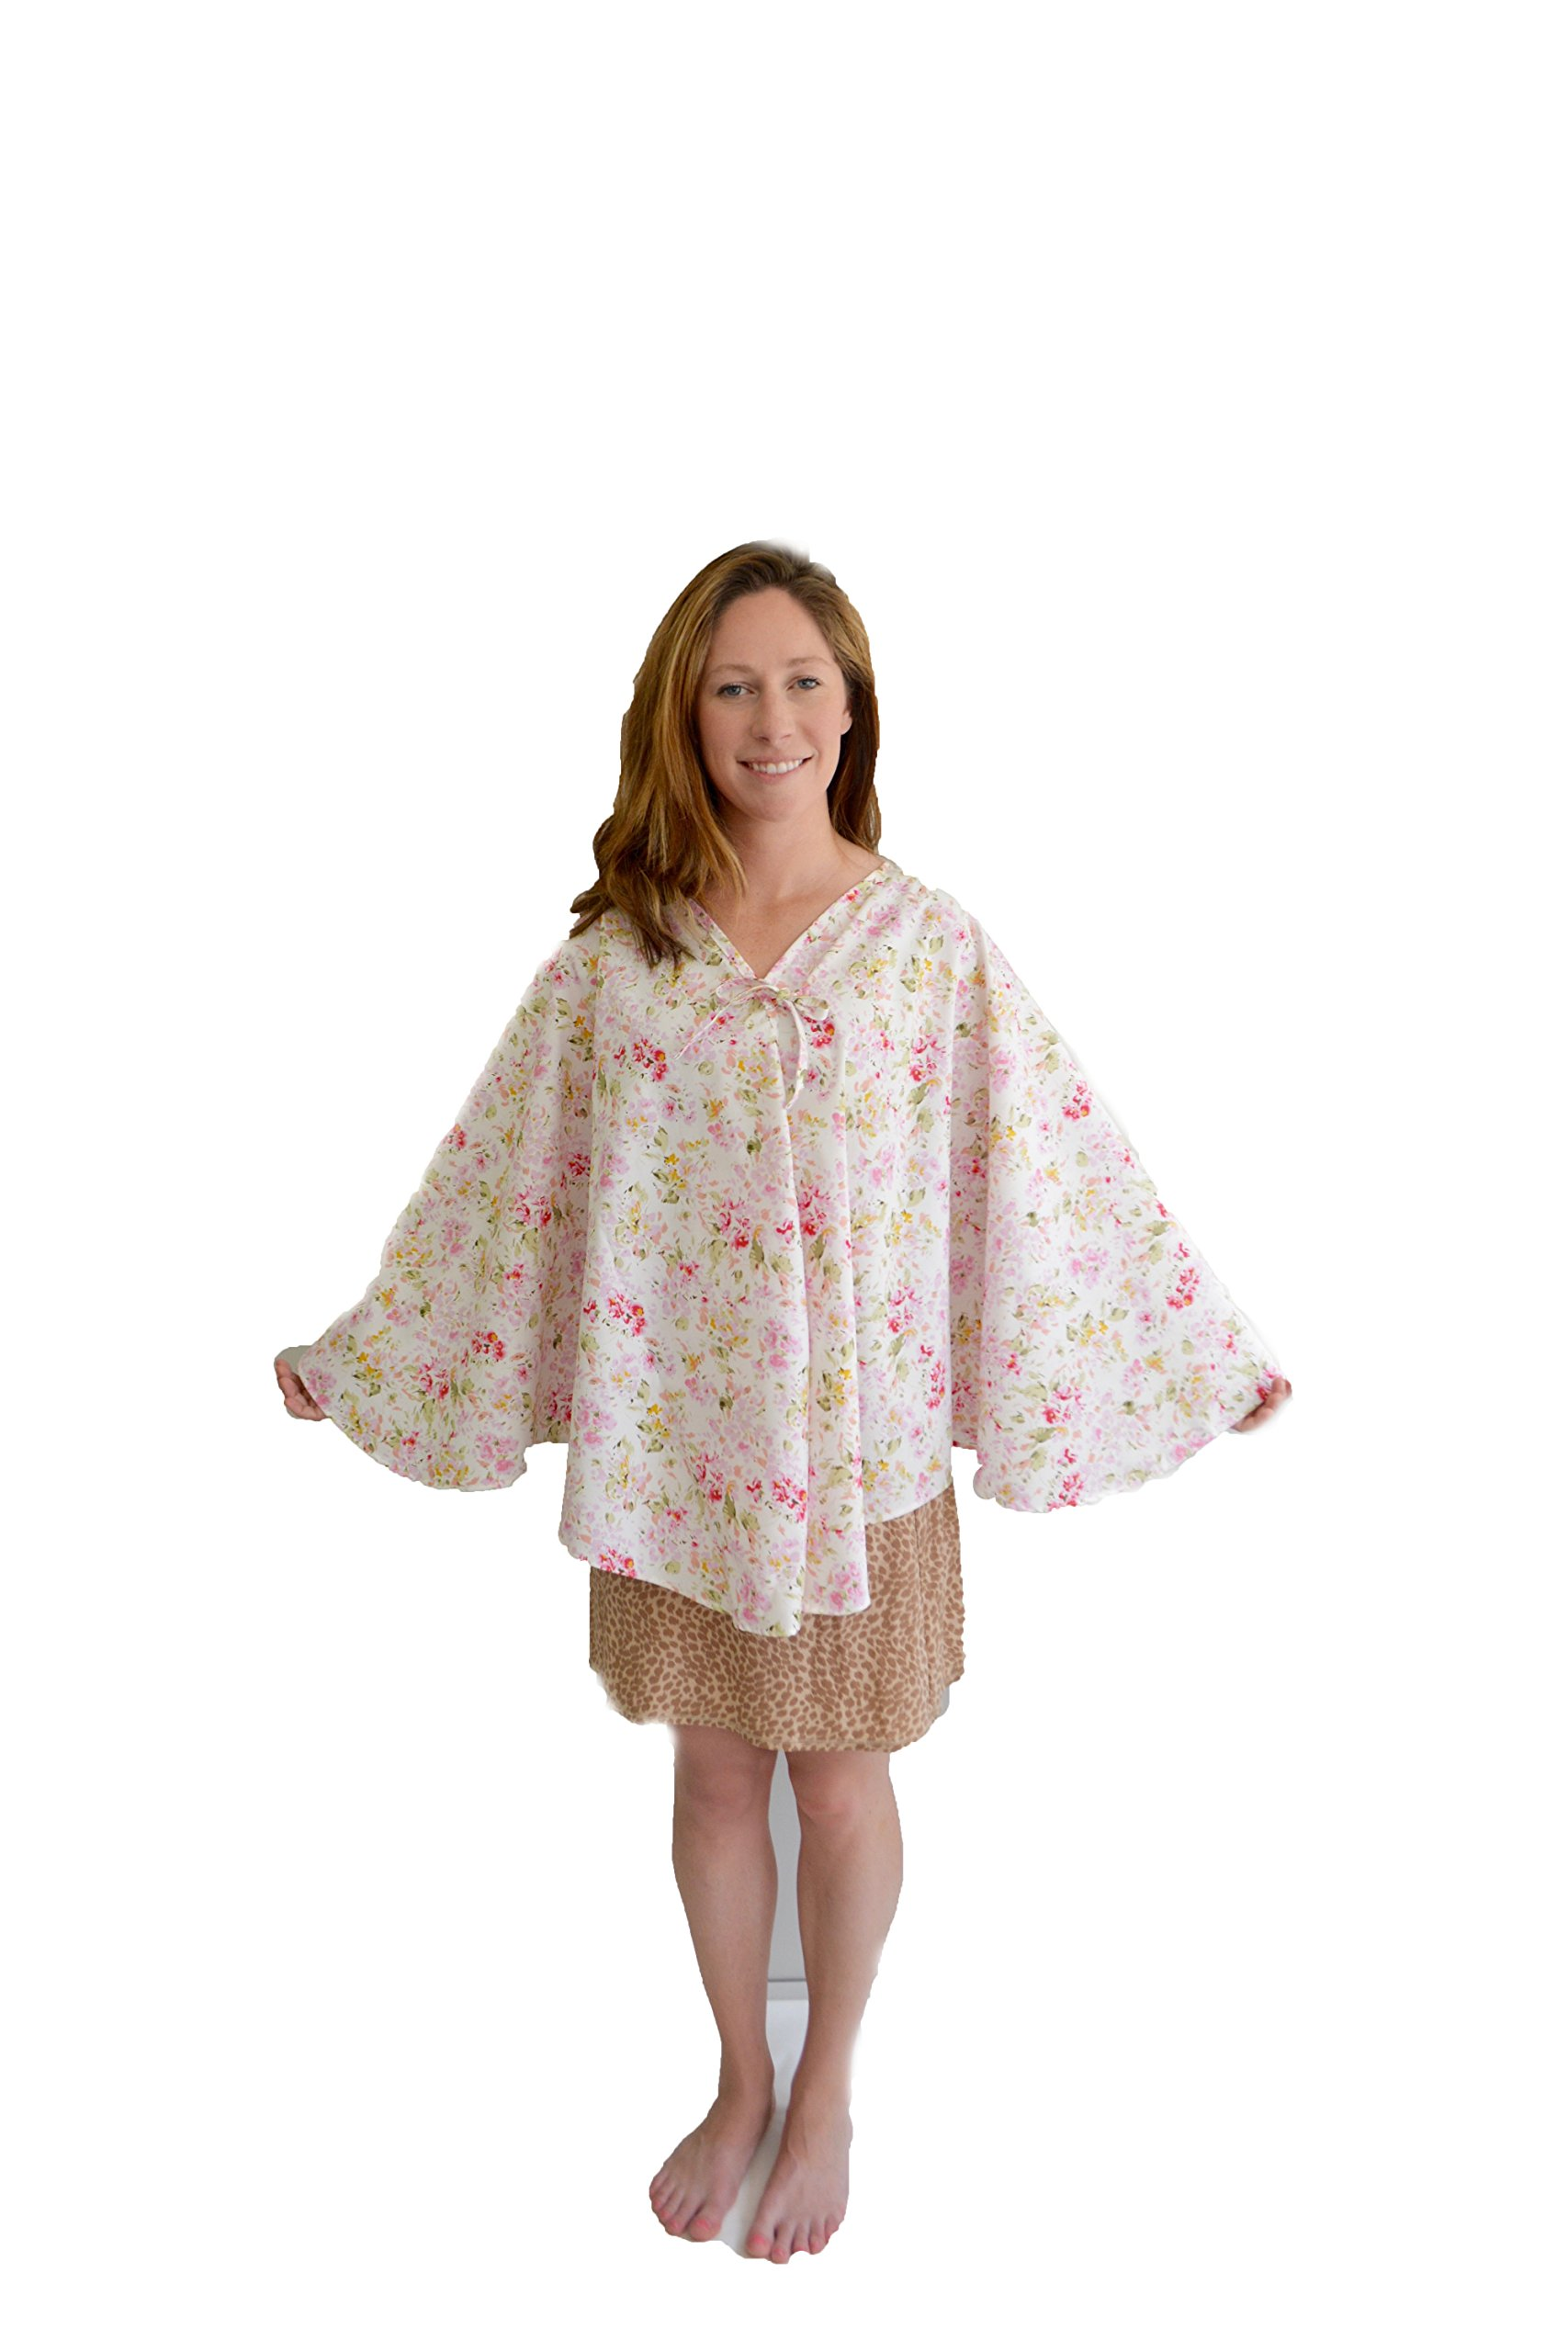 Health Gear - Mammography Exam Imaging Cape - Monet Floral, One Size (6 piece pack) by Health Gear Inc (Image #1)